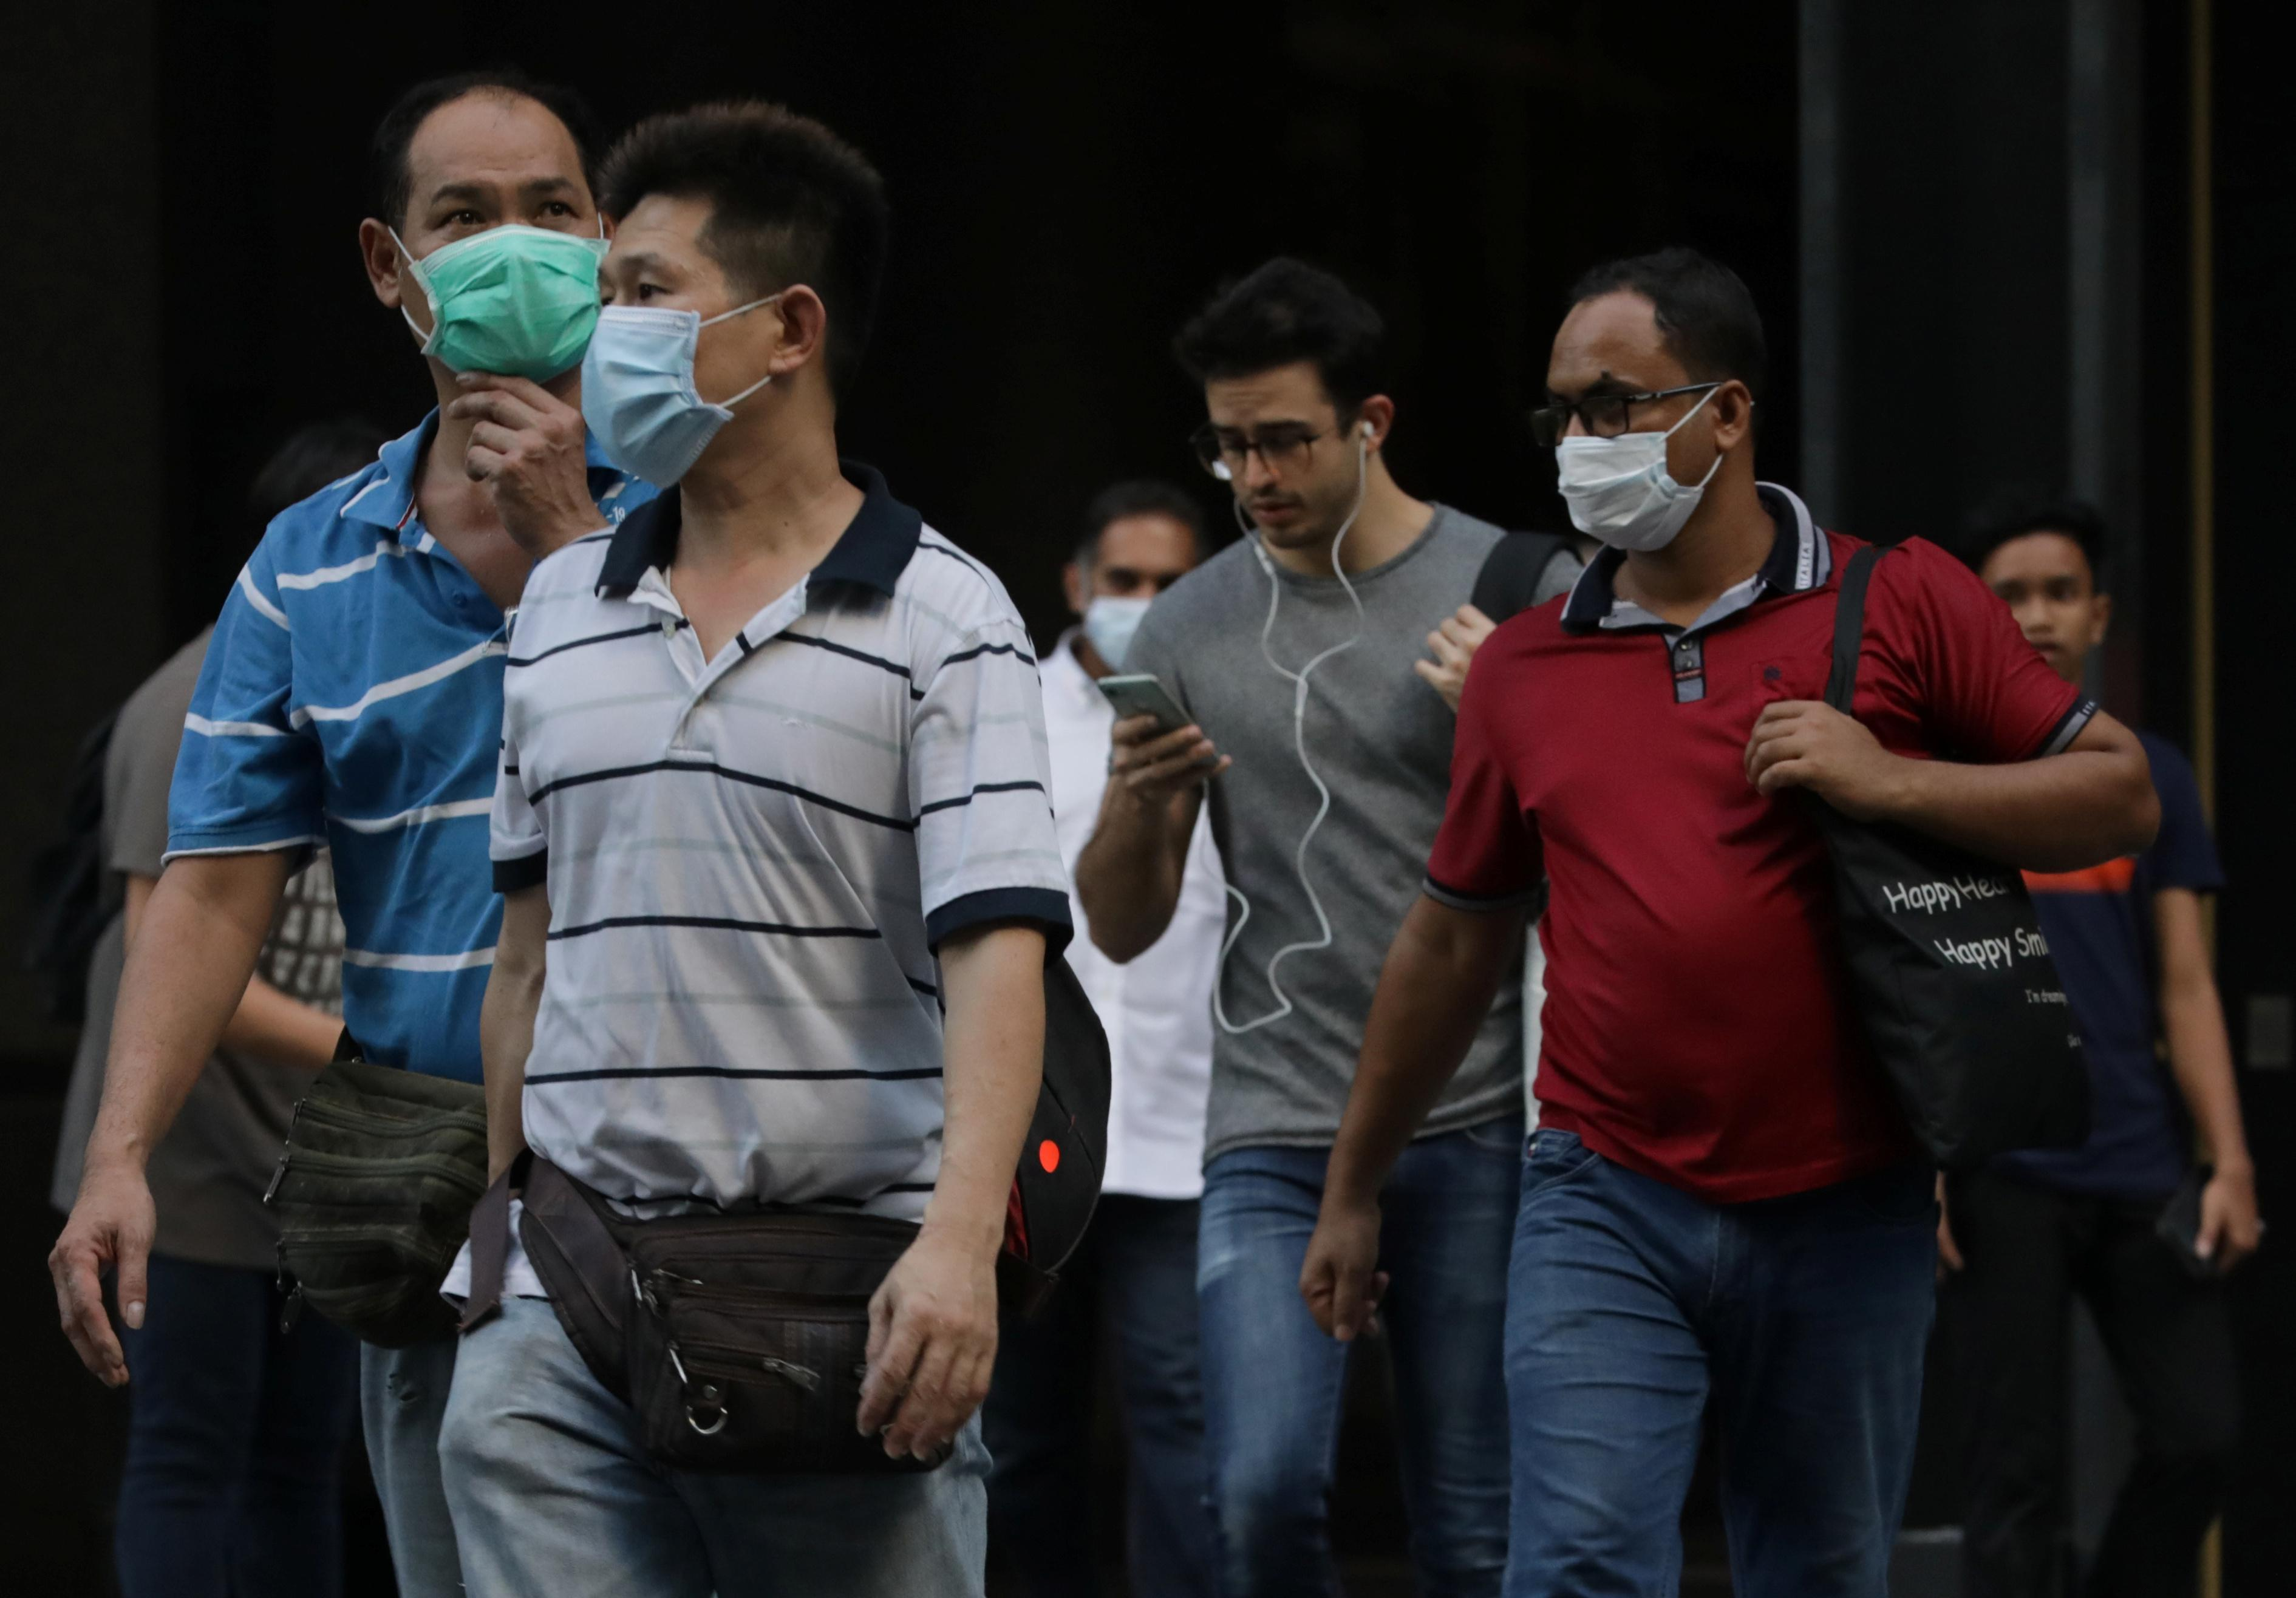 People wearing masks cross a street, during the outbreak of coronavirus disease (COVID-19), in Singapore's central business district. (Reuters photo)